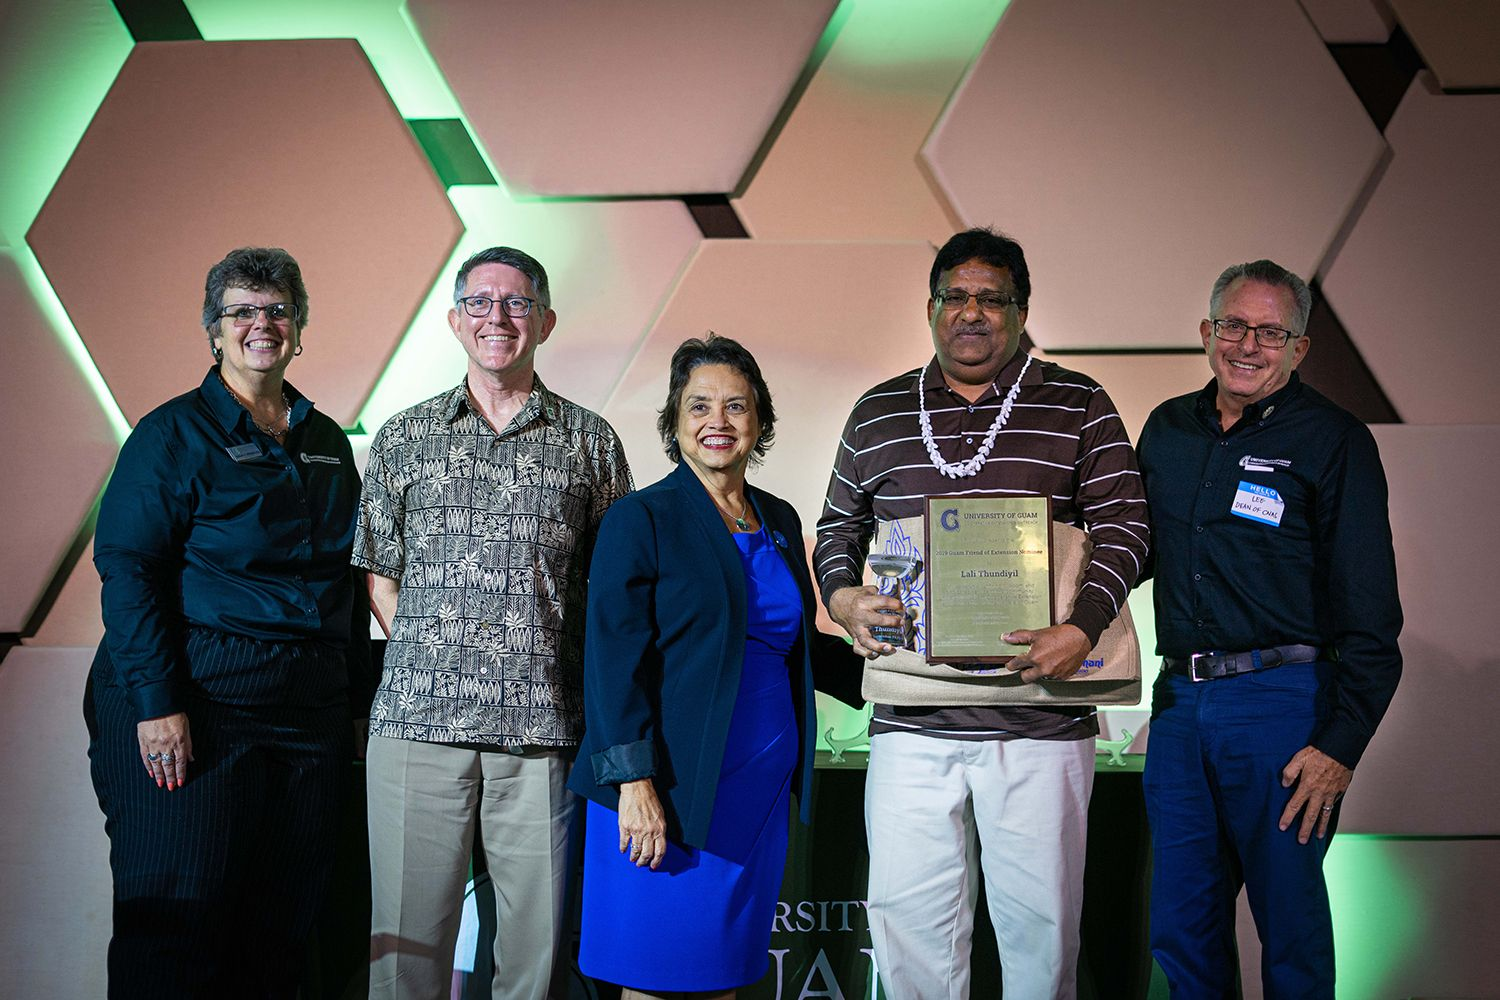 The University of Guam Cooperative Extension & Outreach celebrated its community partners and named the 2019 Friend of Extension during its Annual Cooperative Extension Meeting and Dinner on Sept. 19.